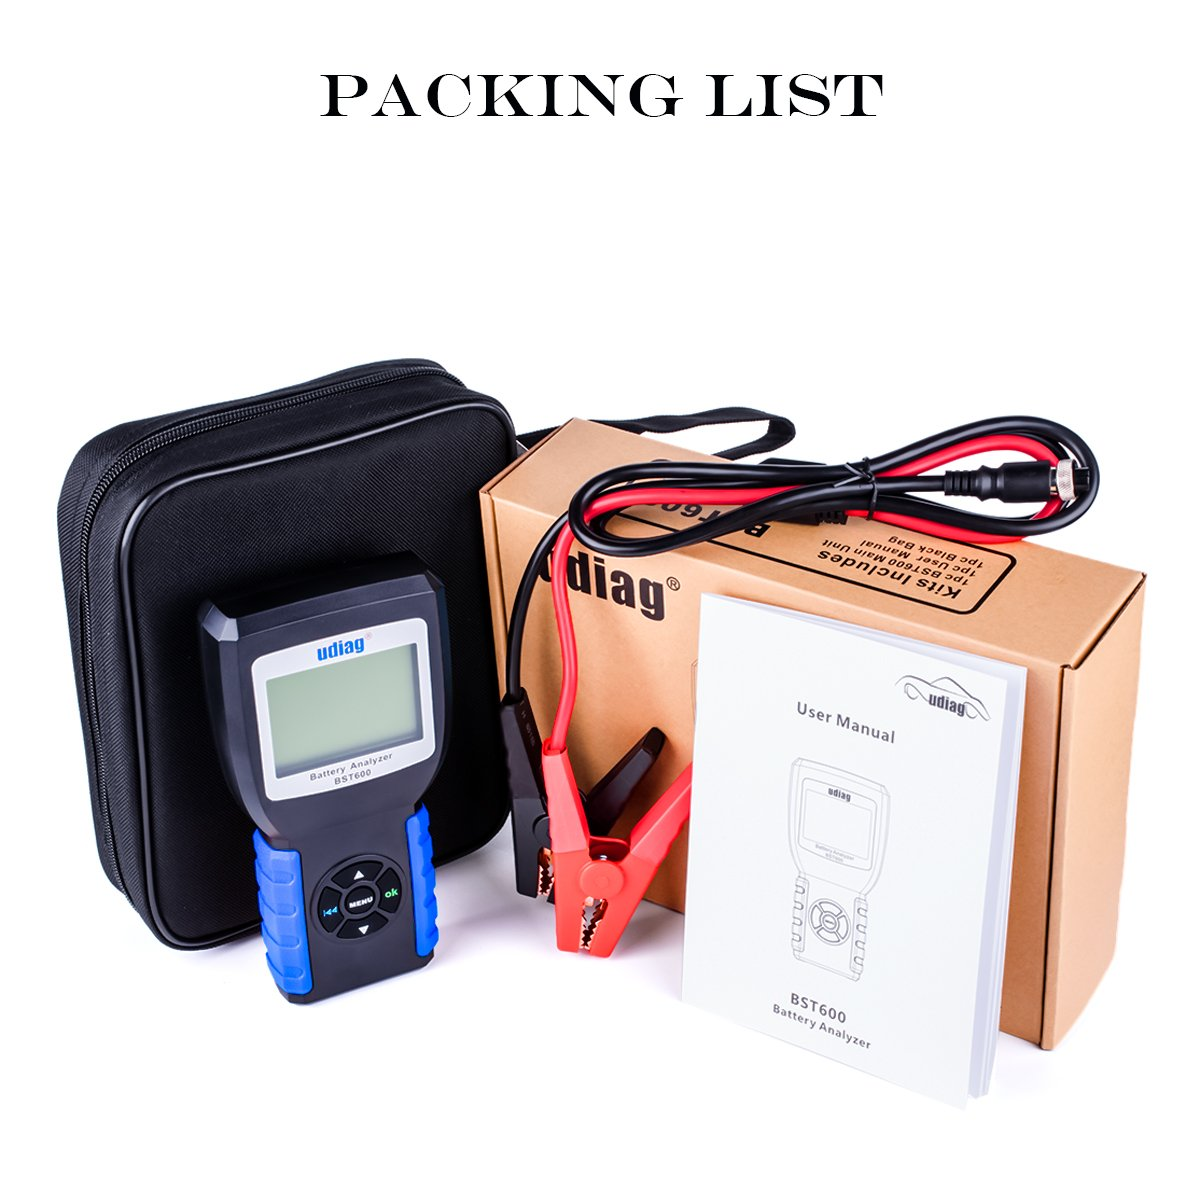 Car Battery Tester, Udiag BST600 Car Battery Load Tester for 12V 100-2000CCA 30-200AH Auto Regular Flooded AGM Flat Plate Gel Batteries Starting and Charging System Blue by udiag (Image #7)